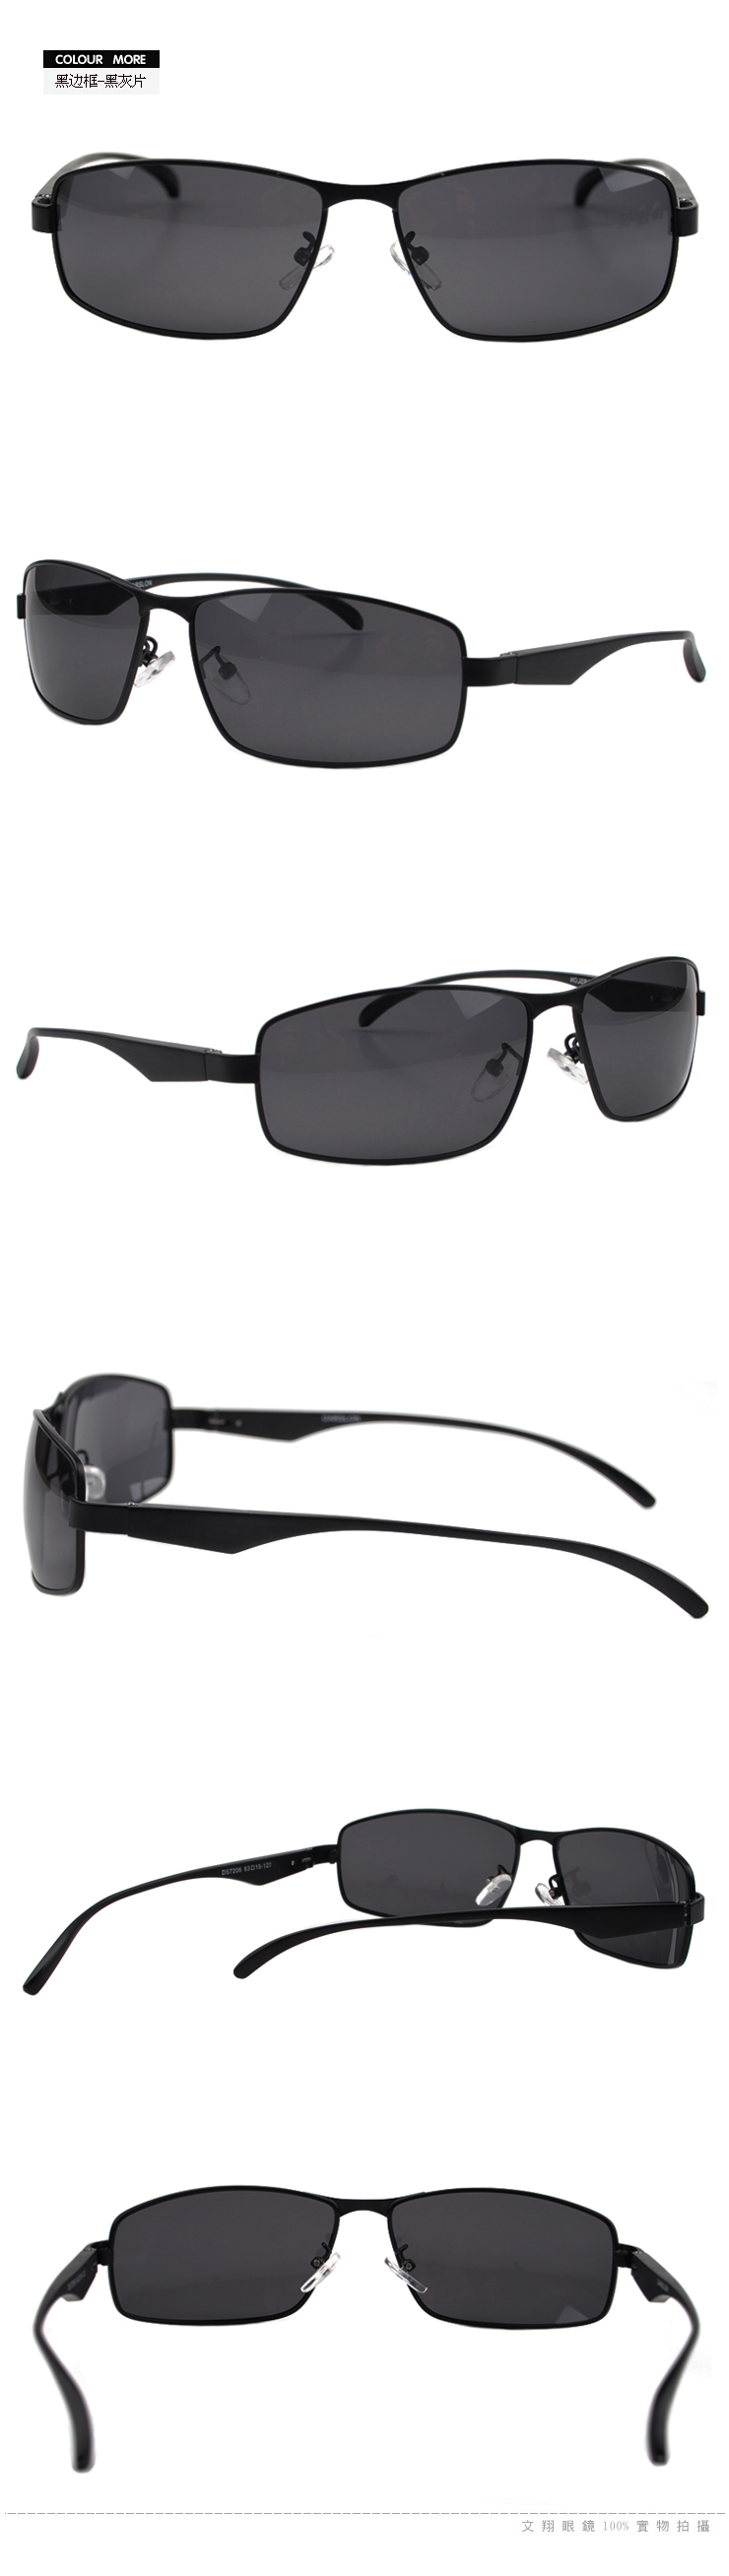 Authentic splitter drivers mirror 2013 men's Polarized Sunglasses fashion new style magnesium aluminum elbow